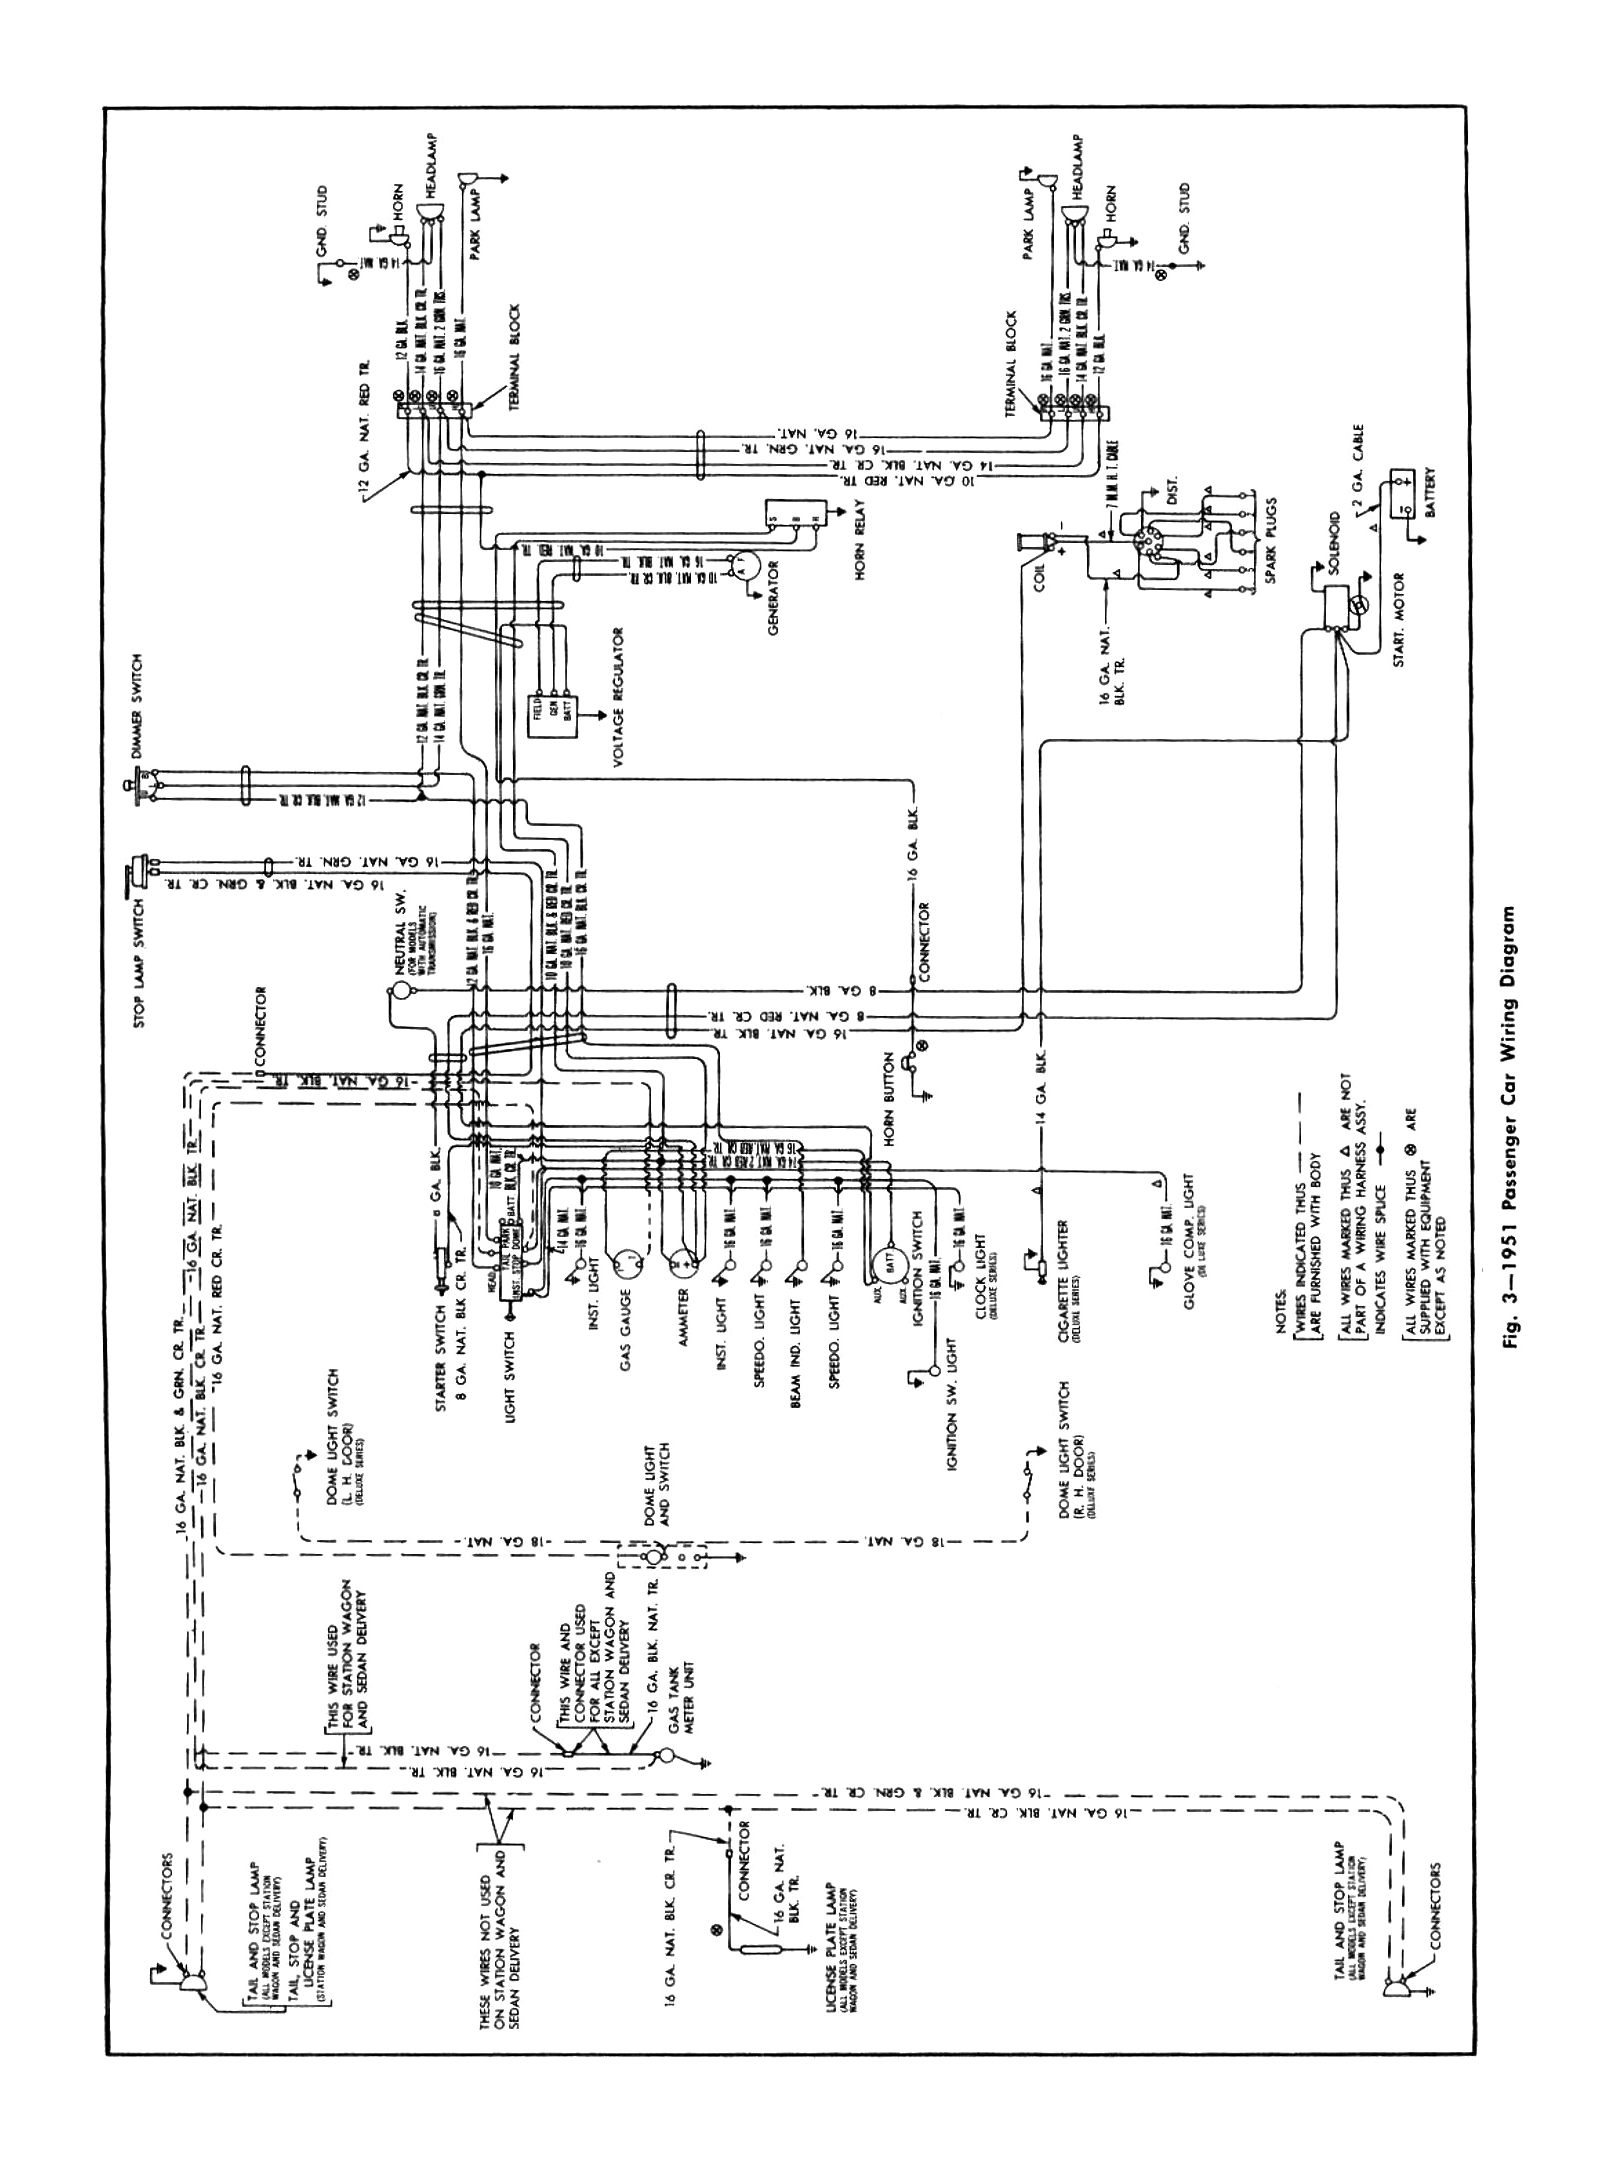 Chevy Wiring Diagrams 1988 Gmc K1500 Diagram Get Free Image About 1951 Passenger Car